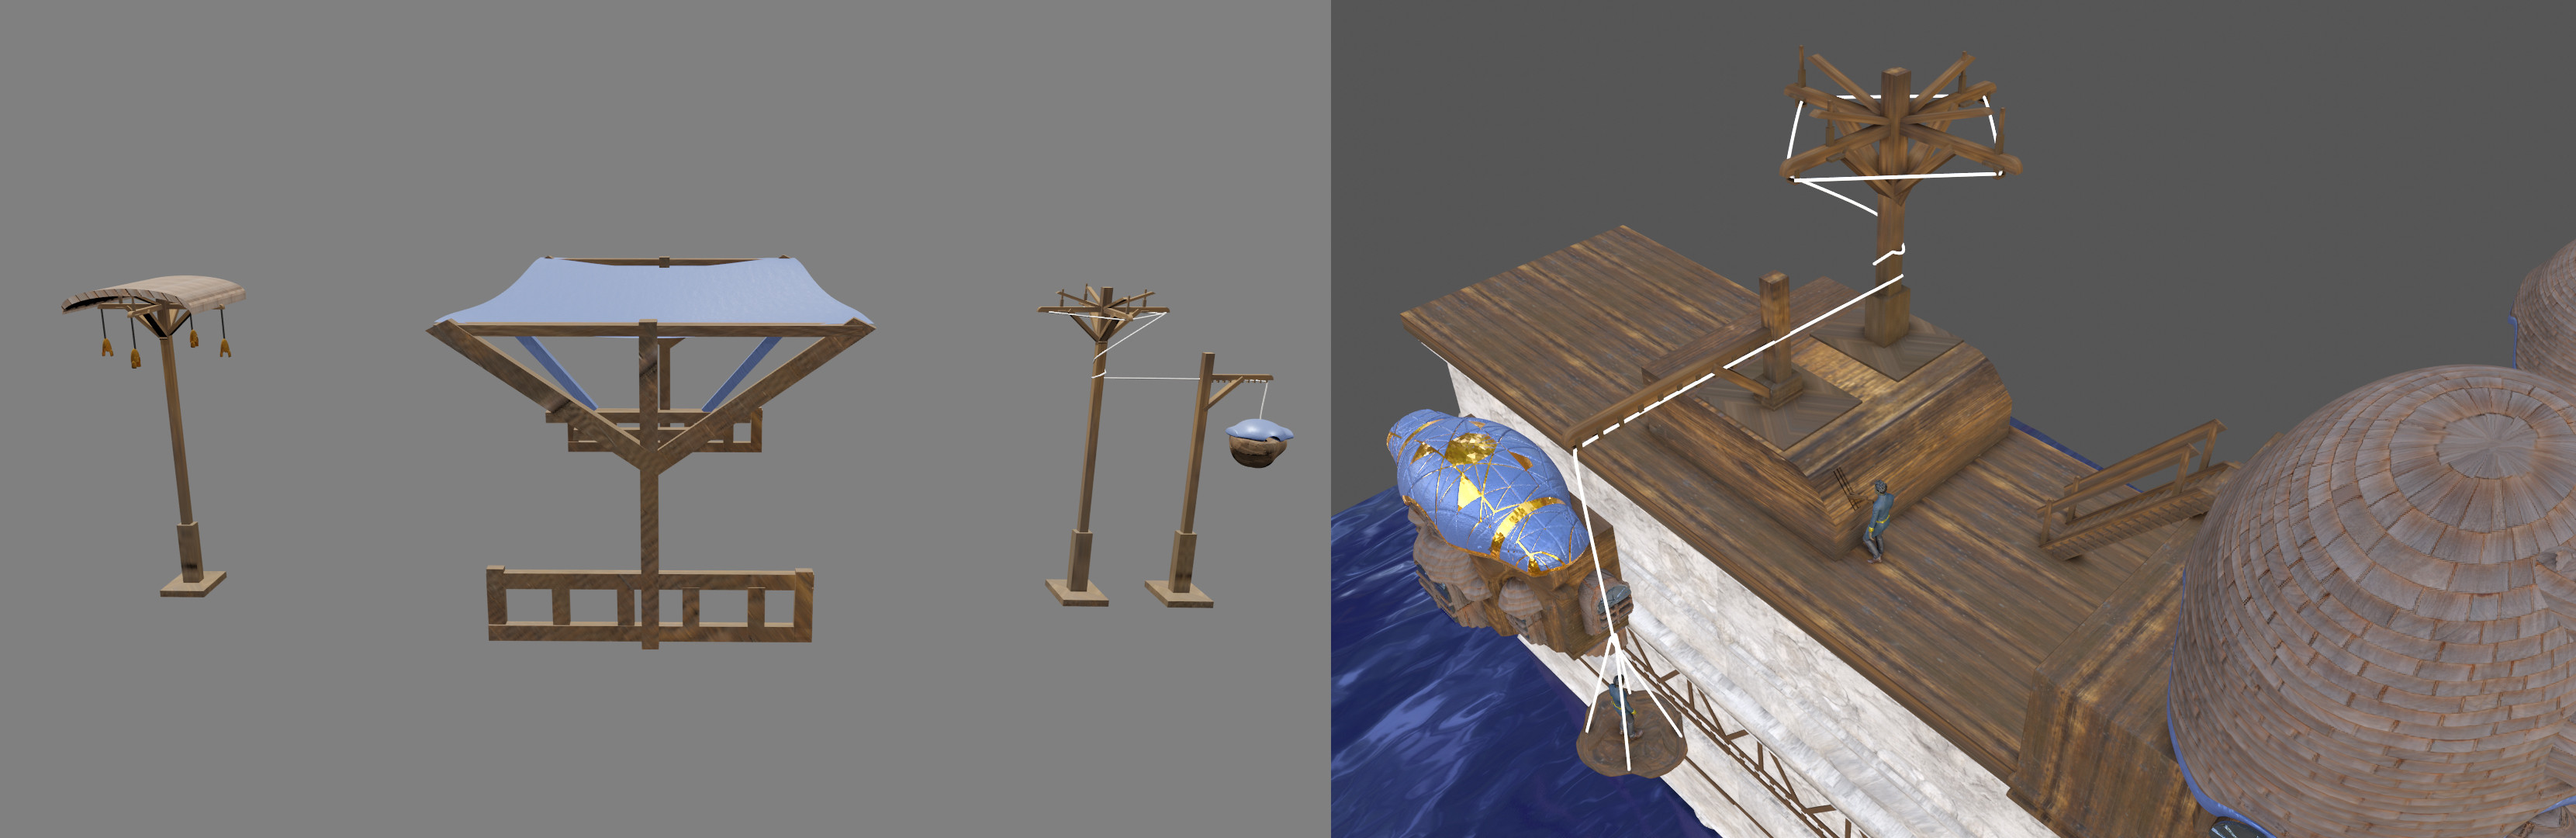 I also had an idea for a waterwheel-lift system and some other props which I'd like to explore further at some point :)